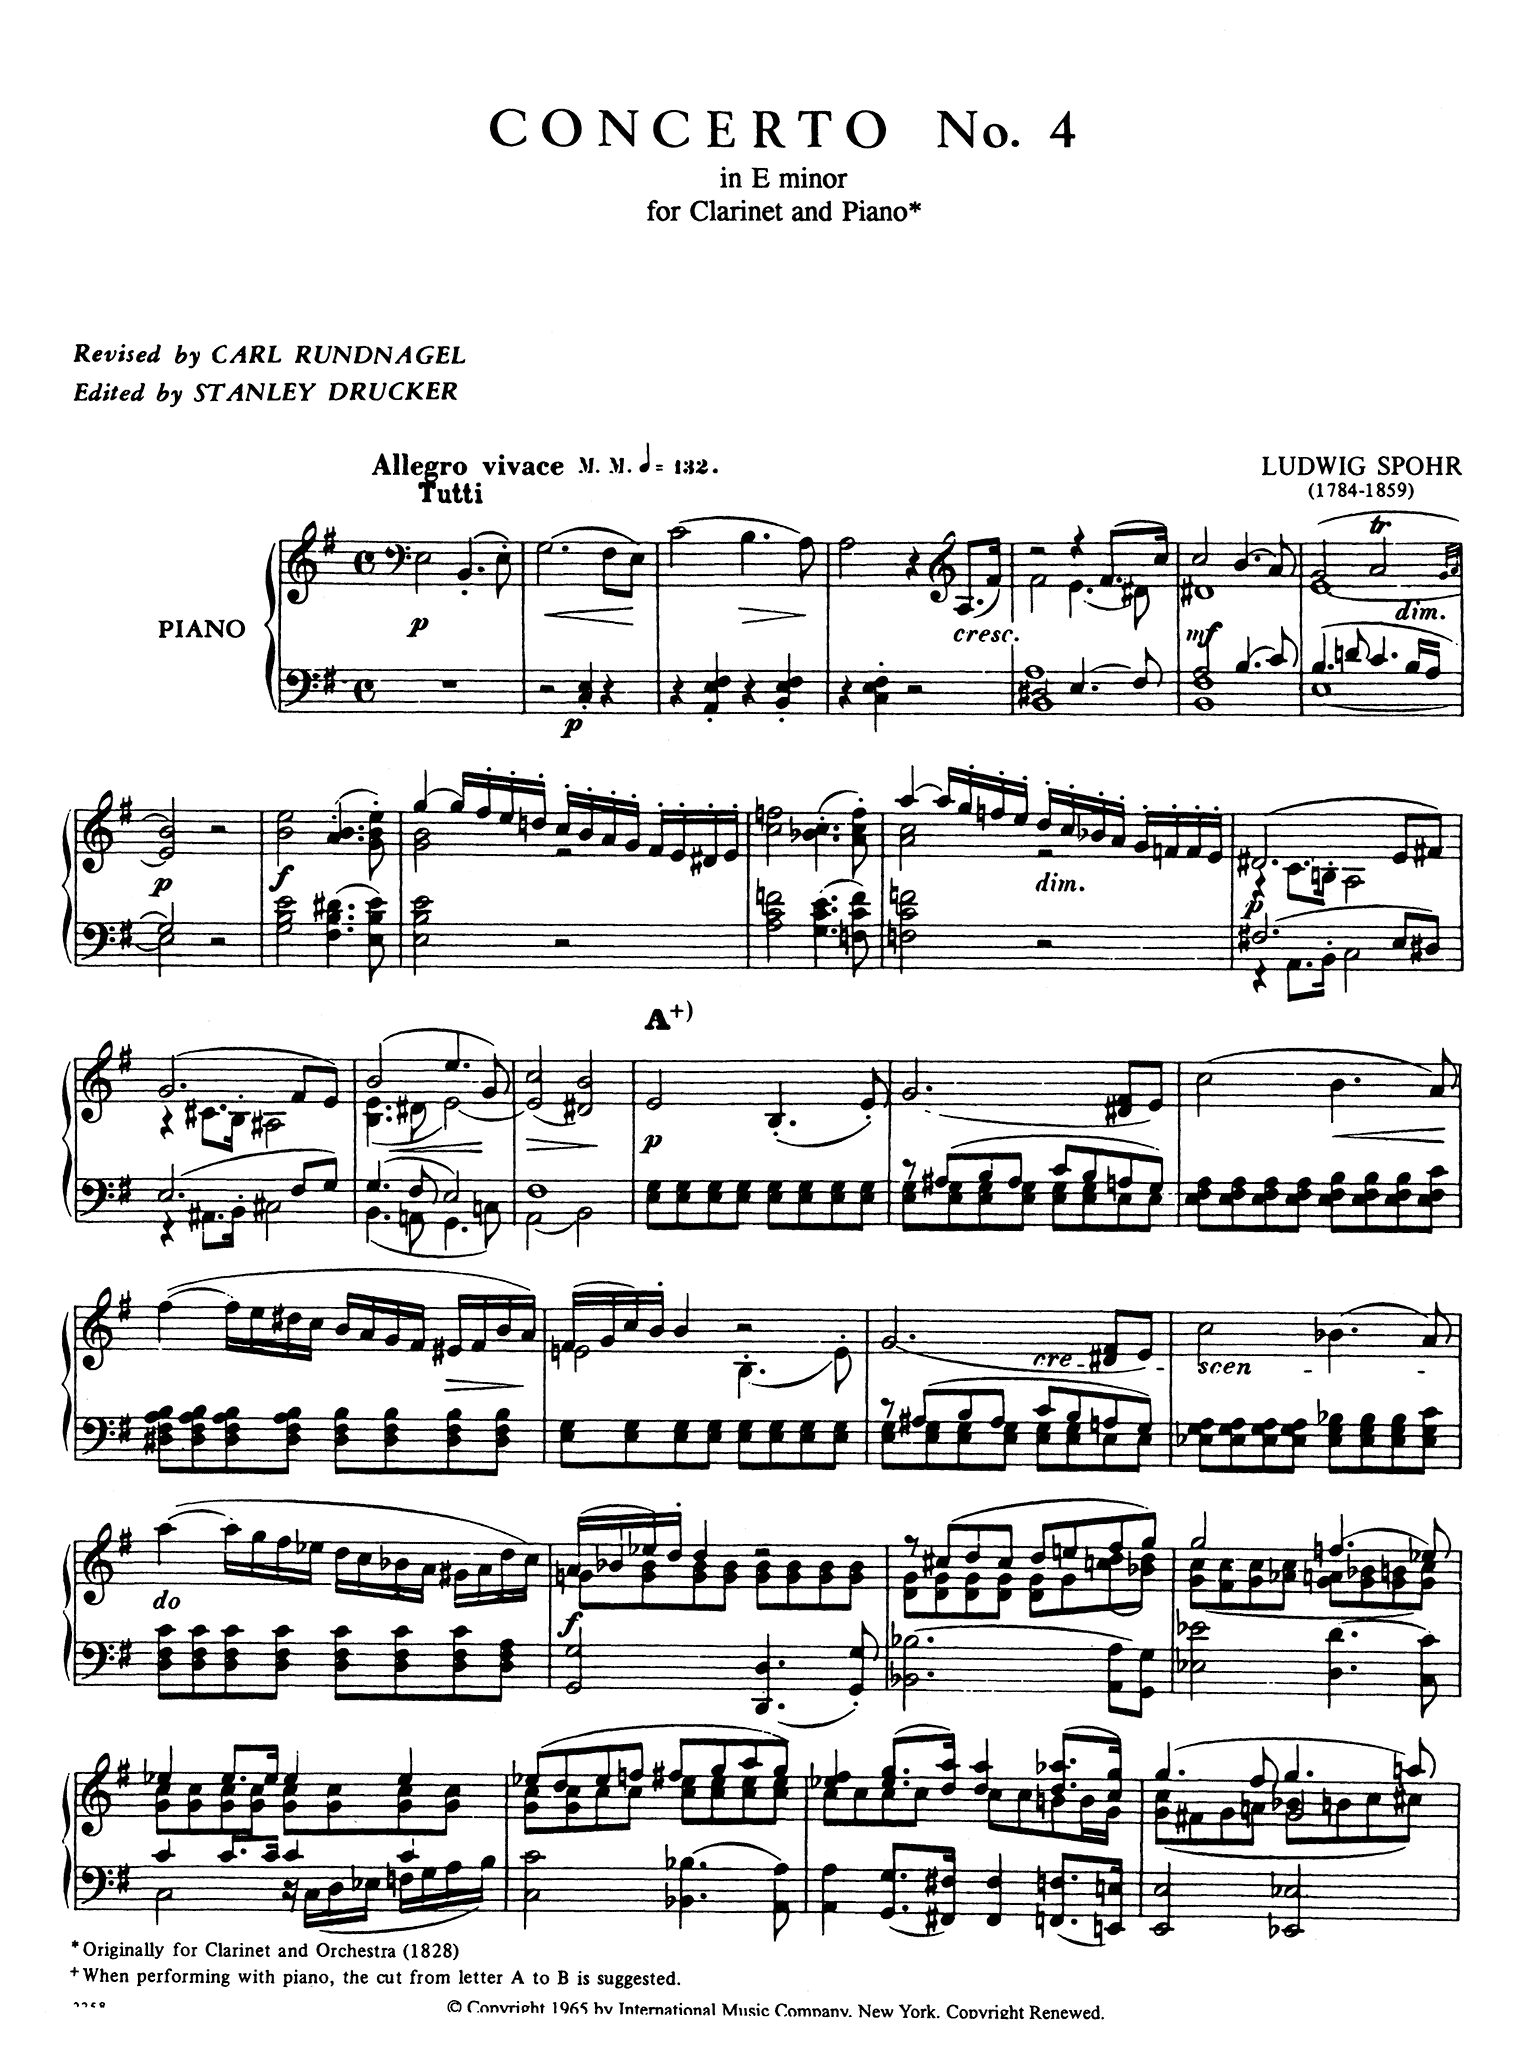 Clarinet Concerto No. 4 in E Minor, WoO 20 - Movement 1